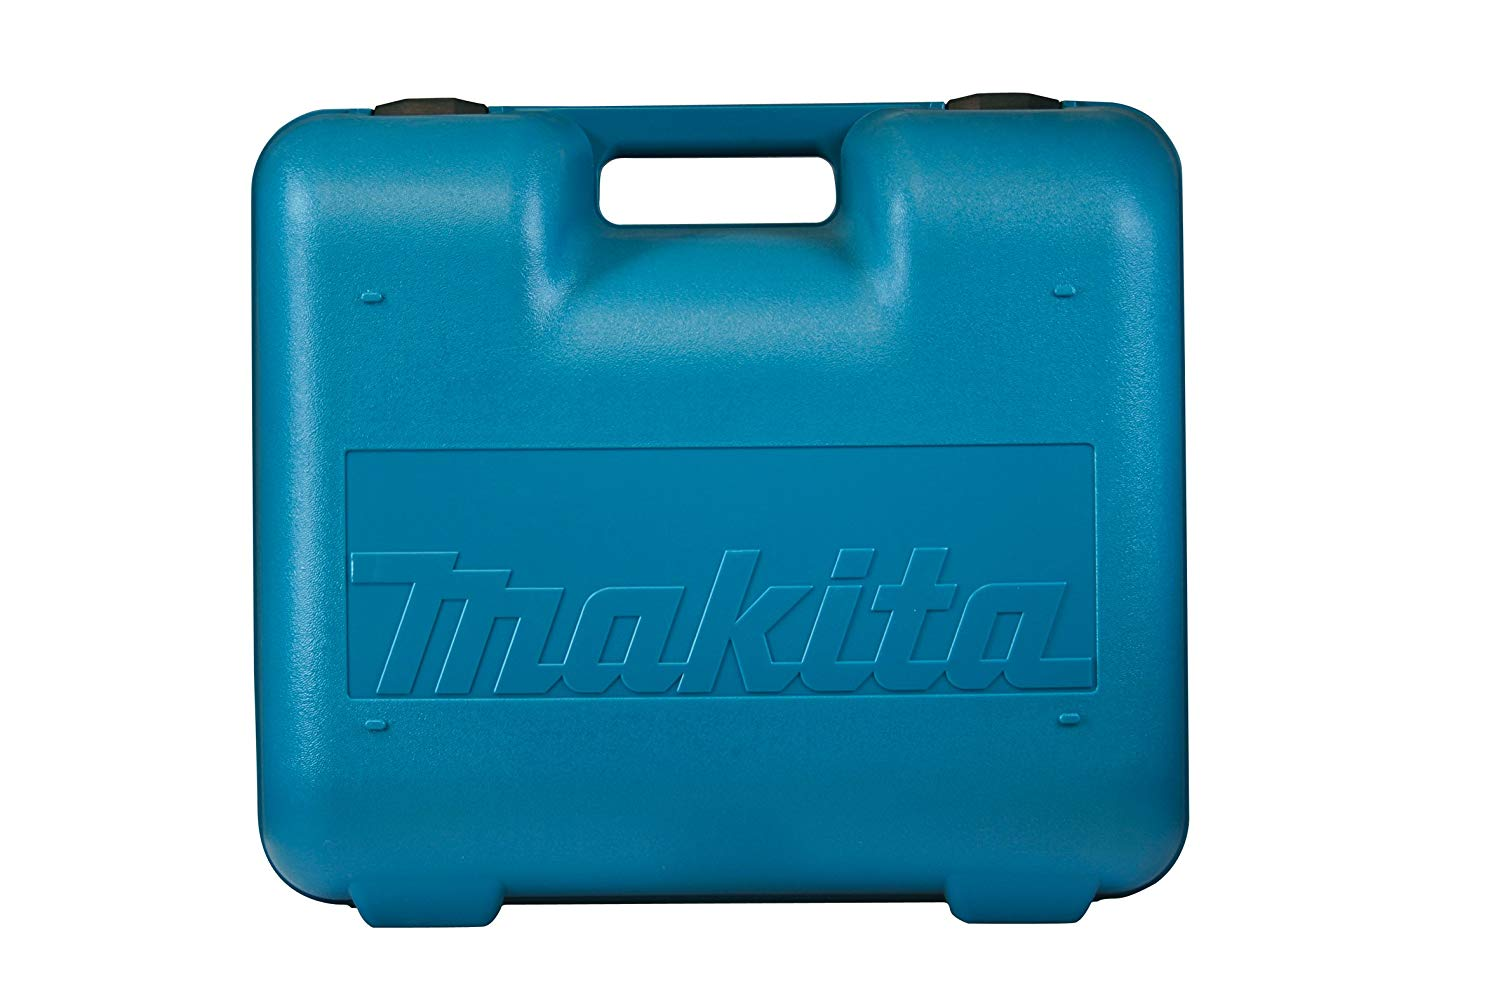 Makita Transportkoffer blau amazon